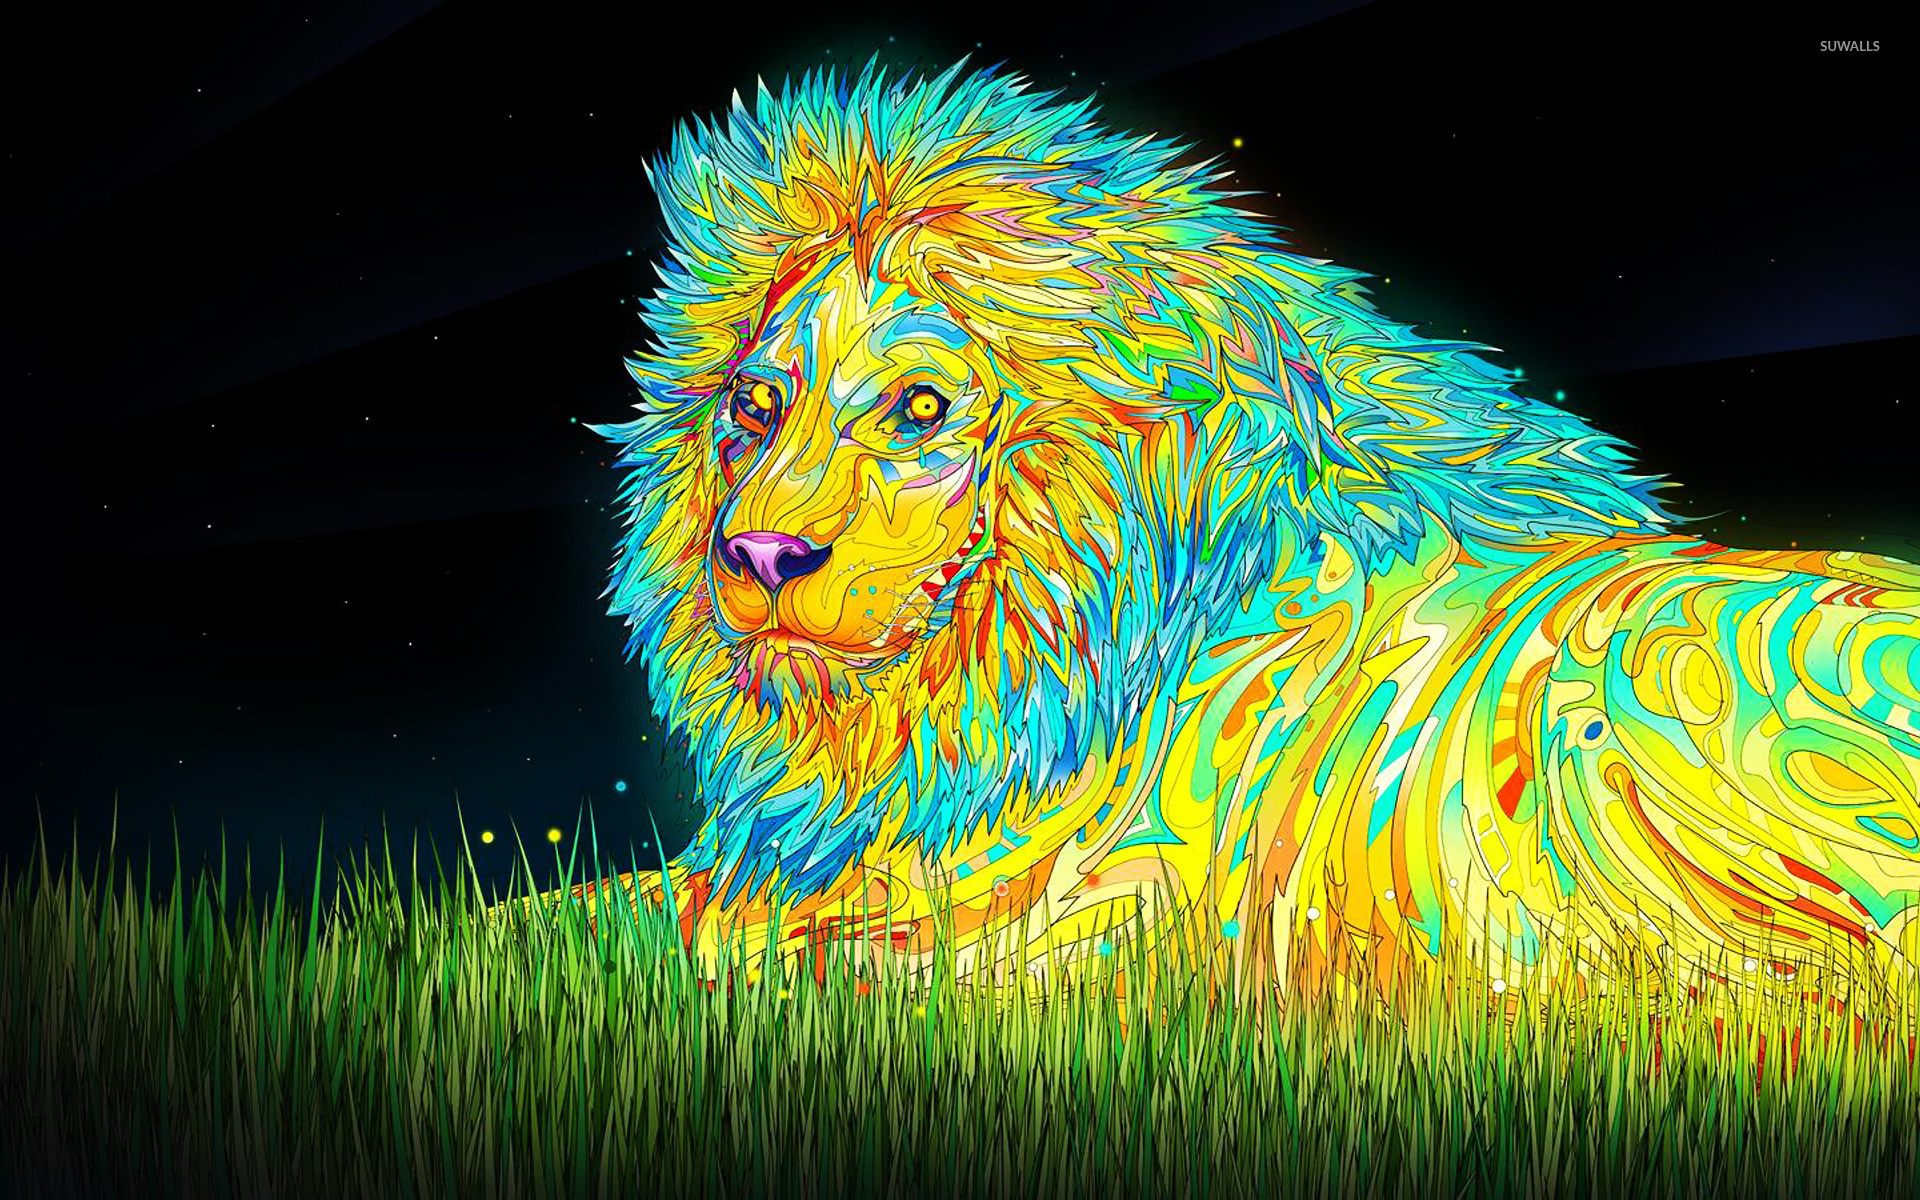 1920x1200 Psychoactive lion wallpaper